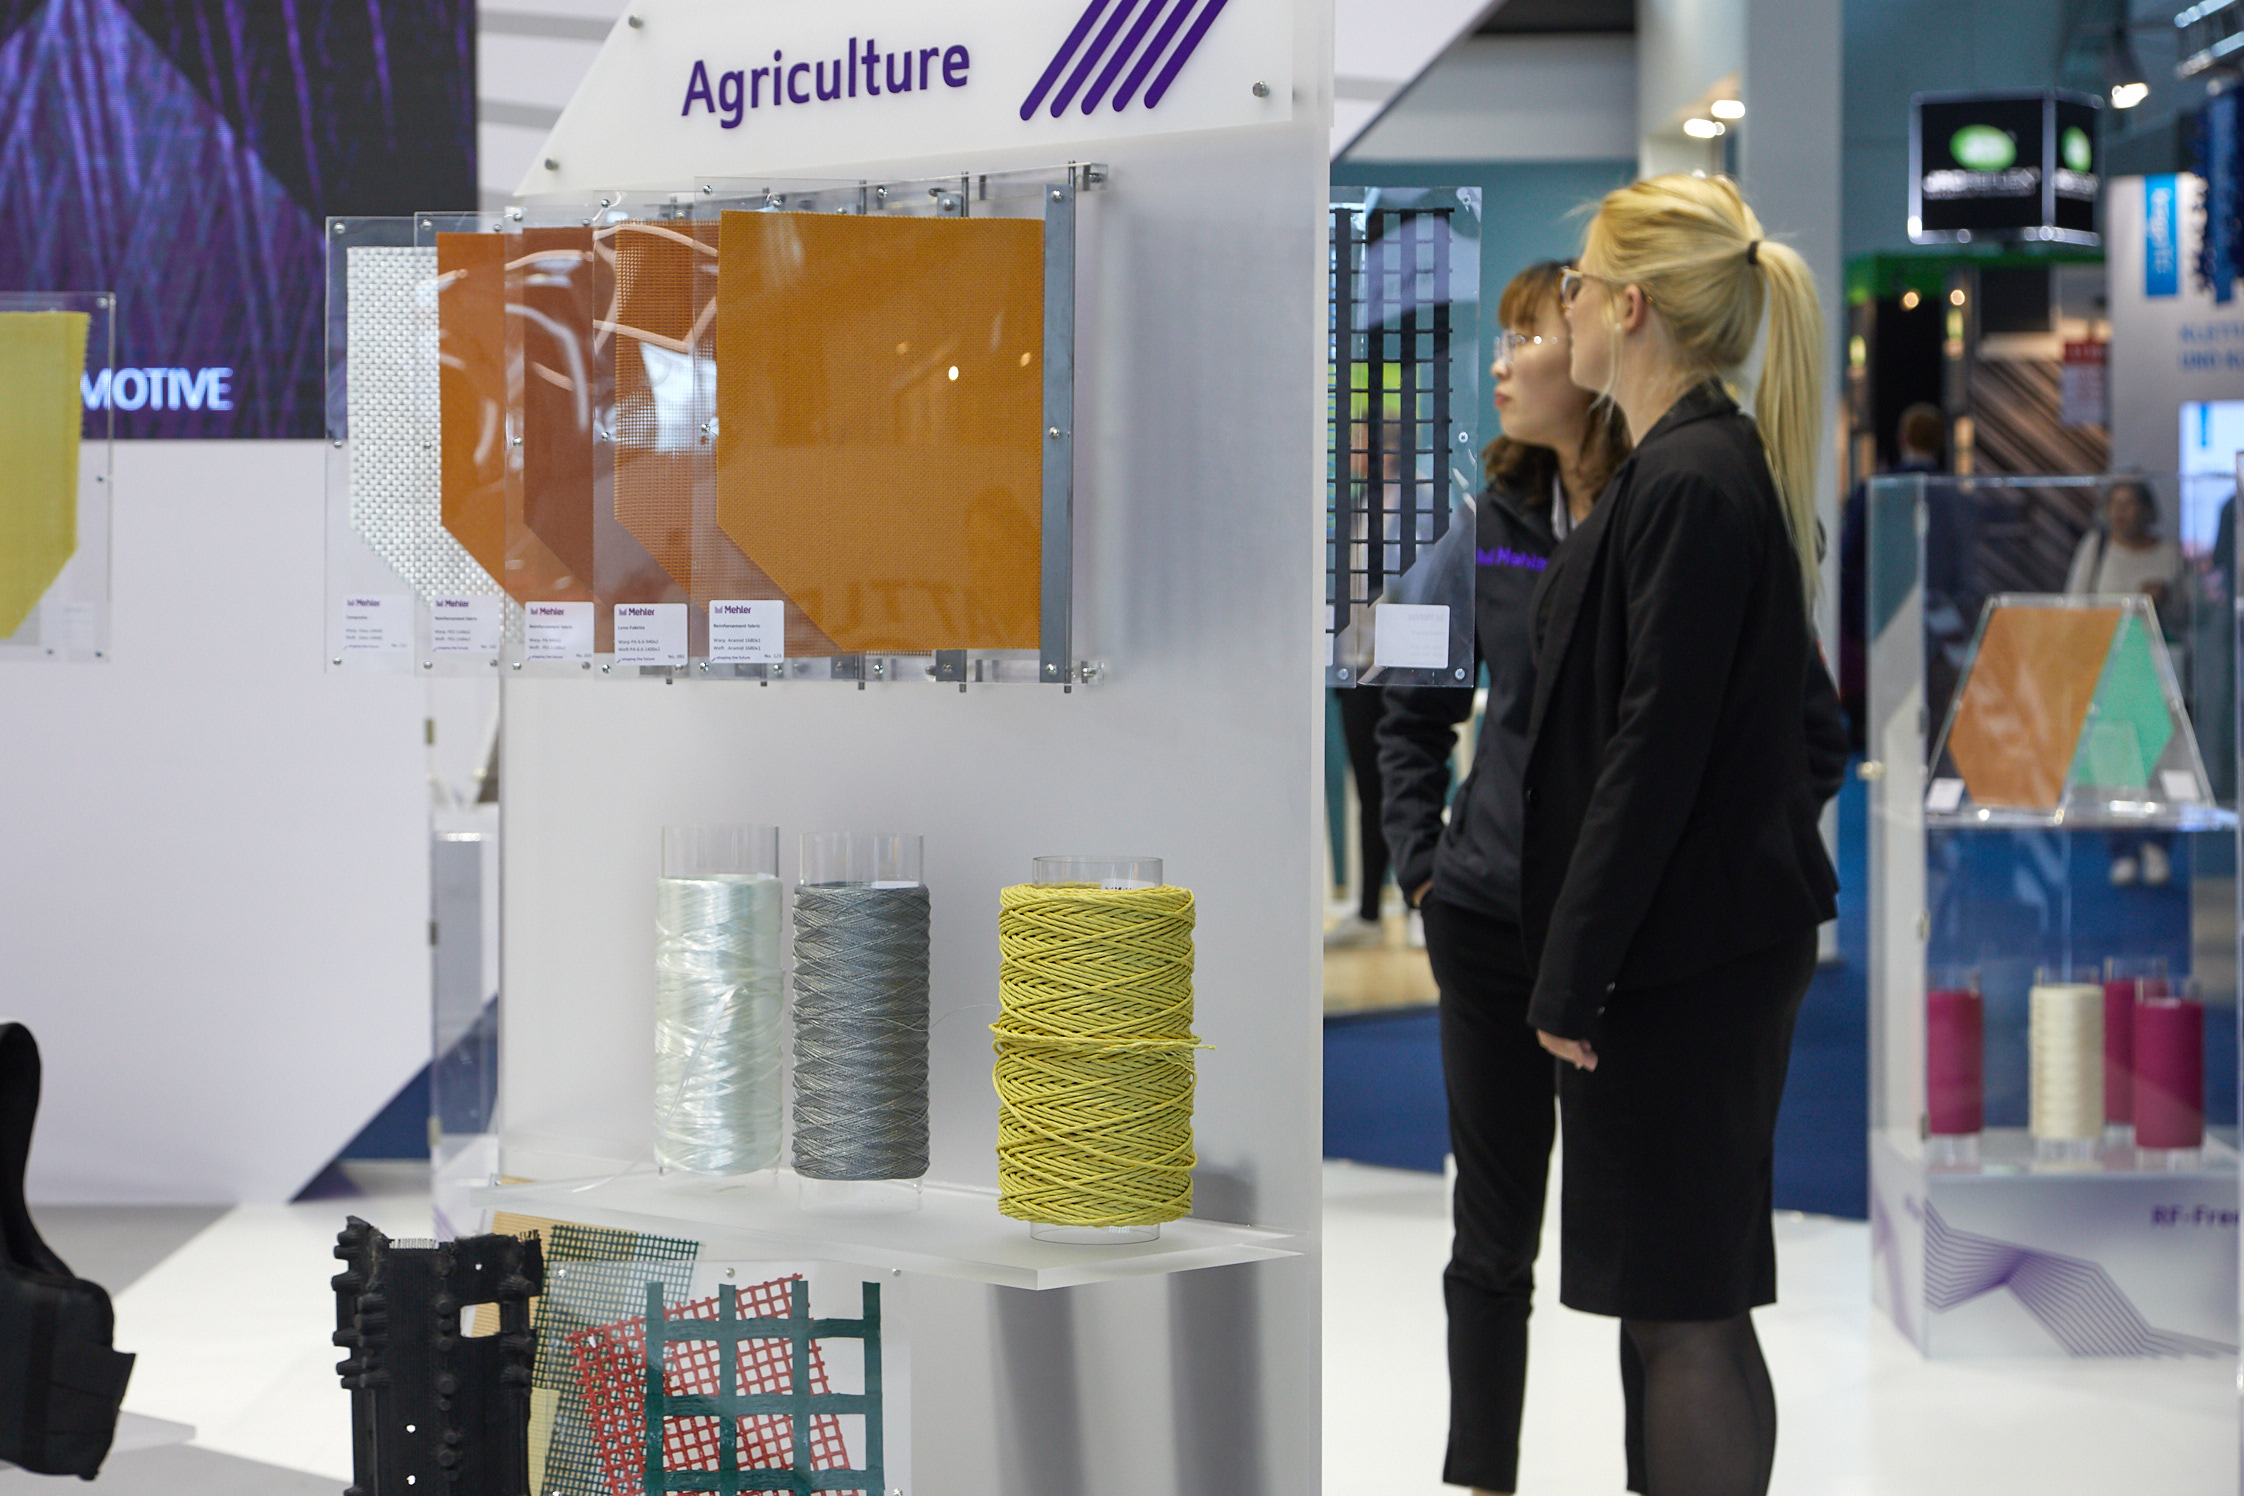 Agrotech: Innovative Yarns used in the Agriculture